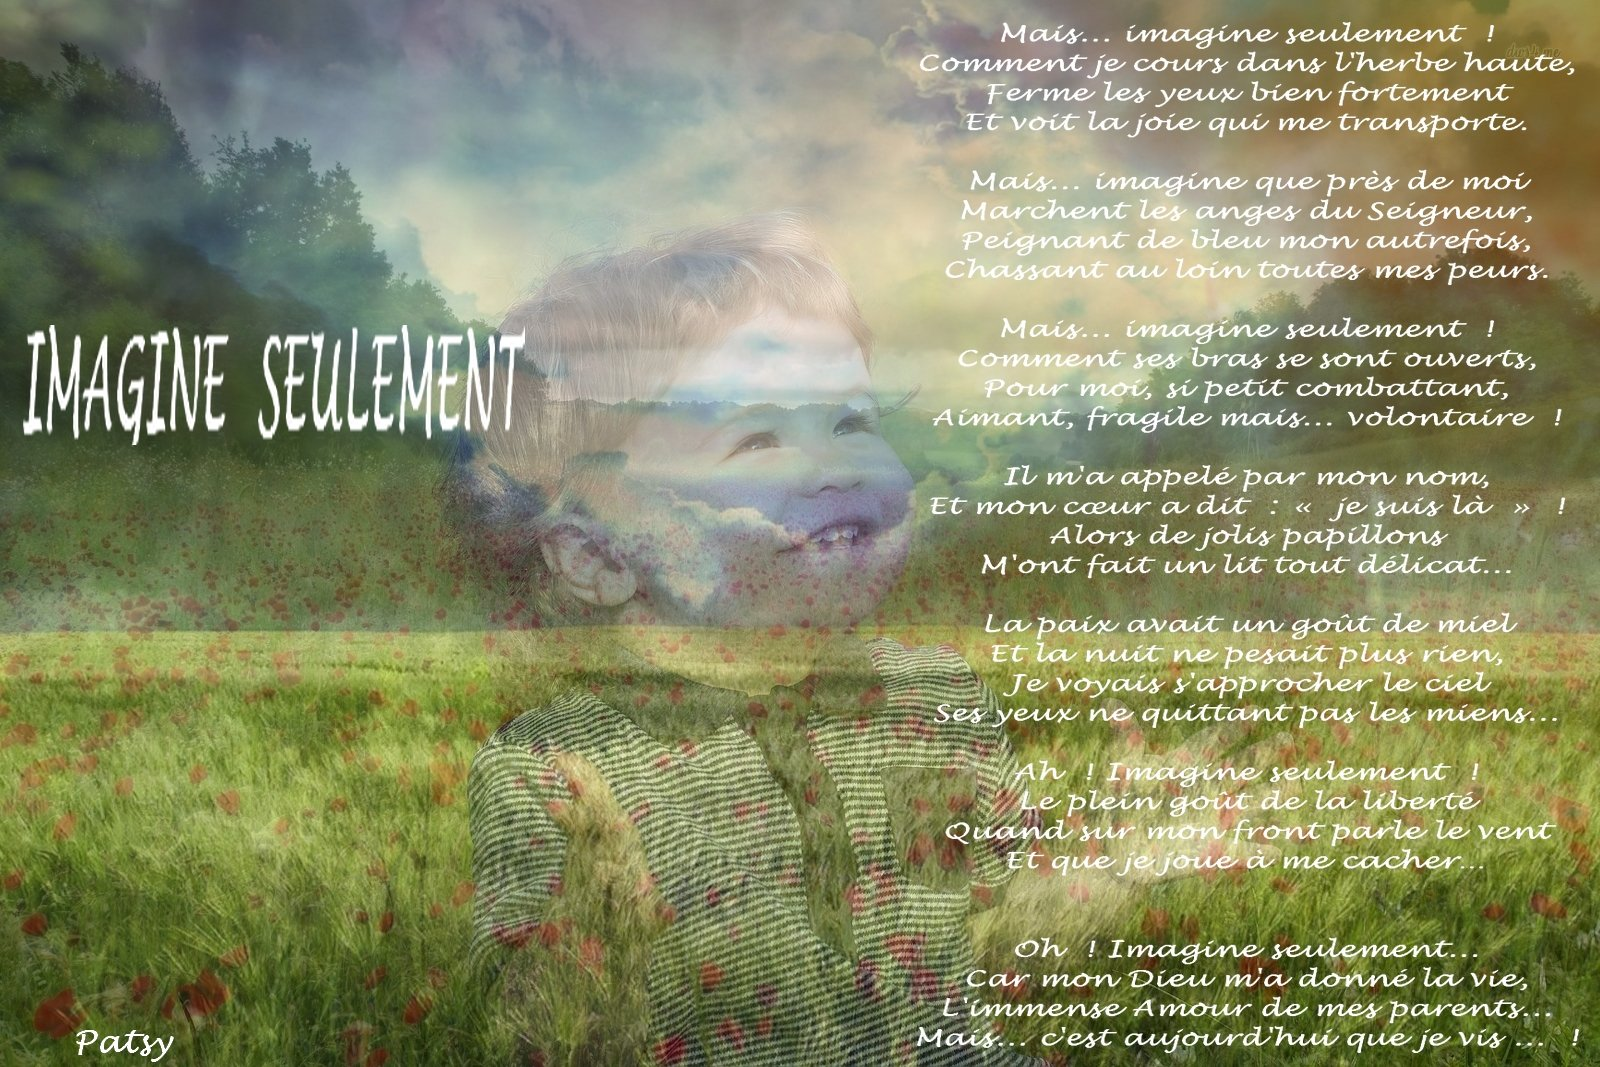 imagine seulement-Photopoeme31600x1067